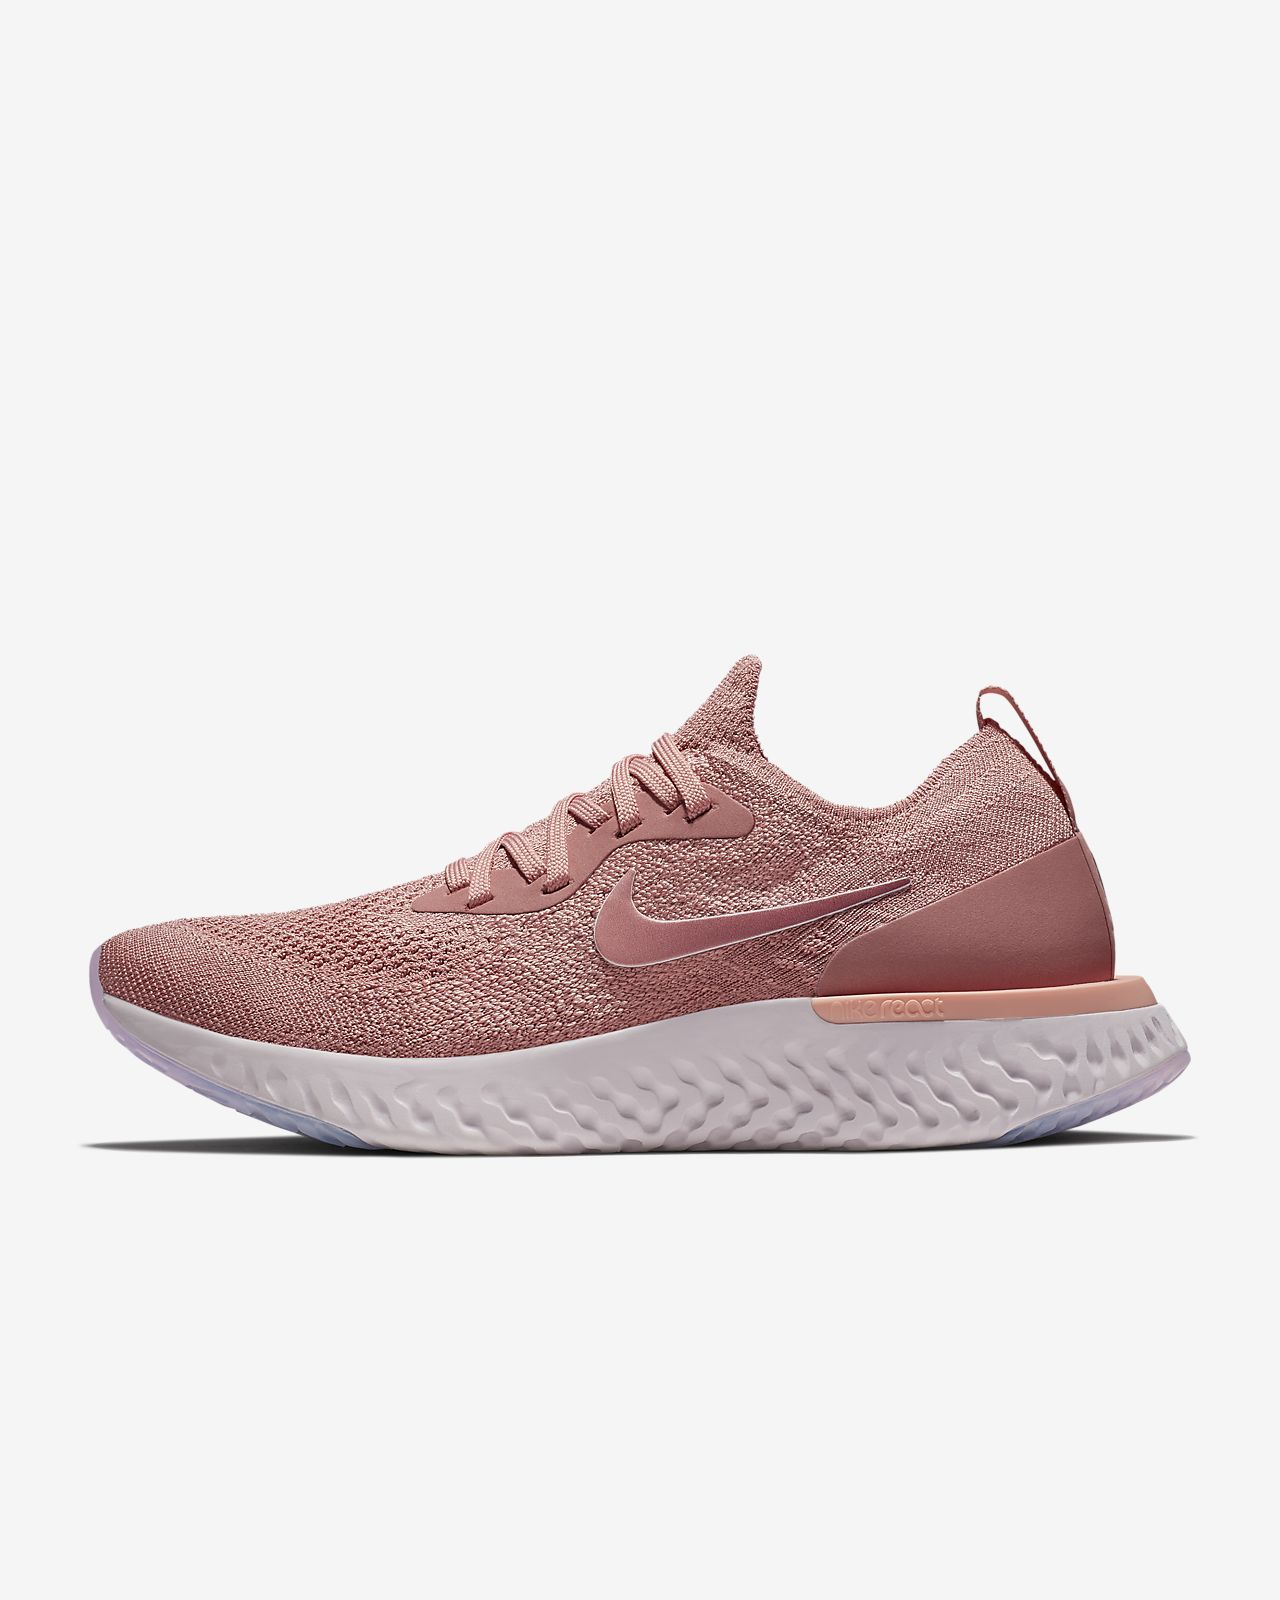 07f350d5f22fb7 Nike Epic React Flyknit 1 Women s Running Shoe. Nike.com ID